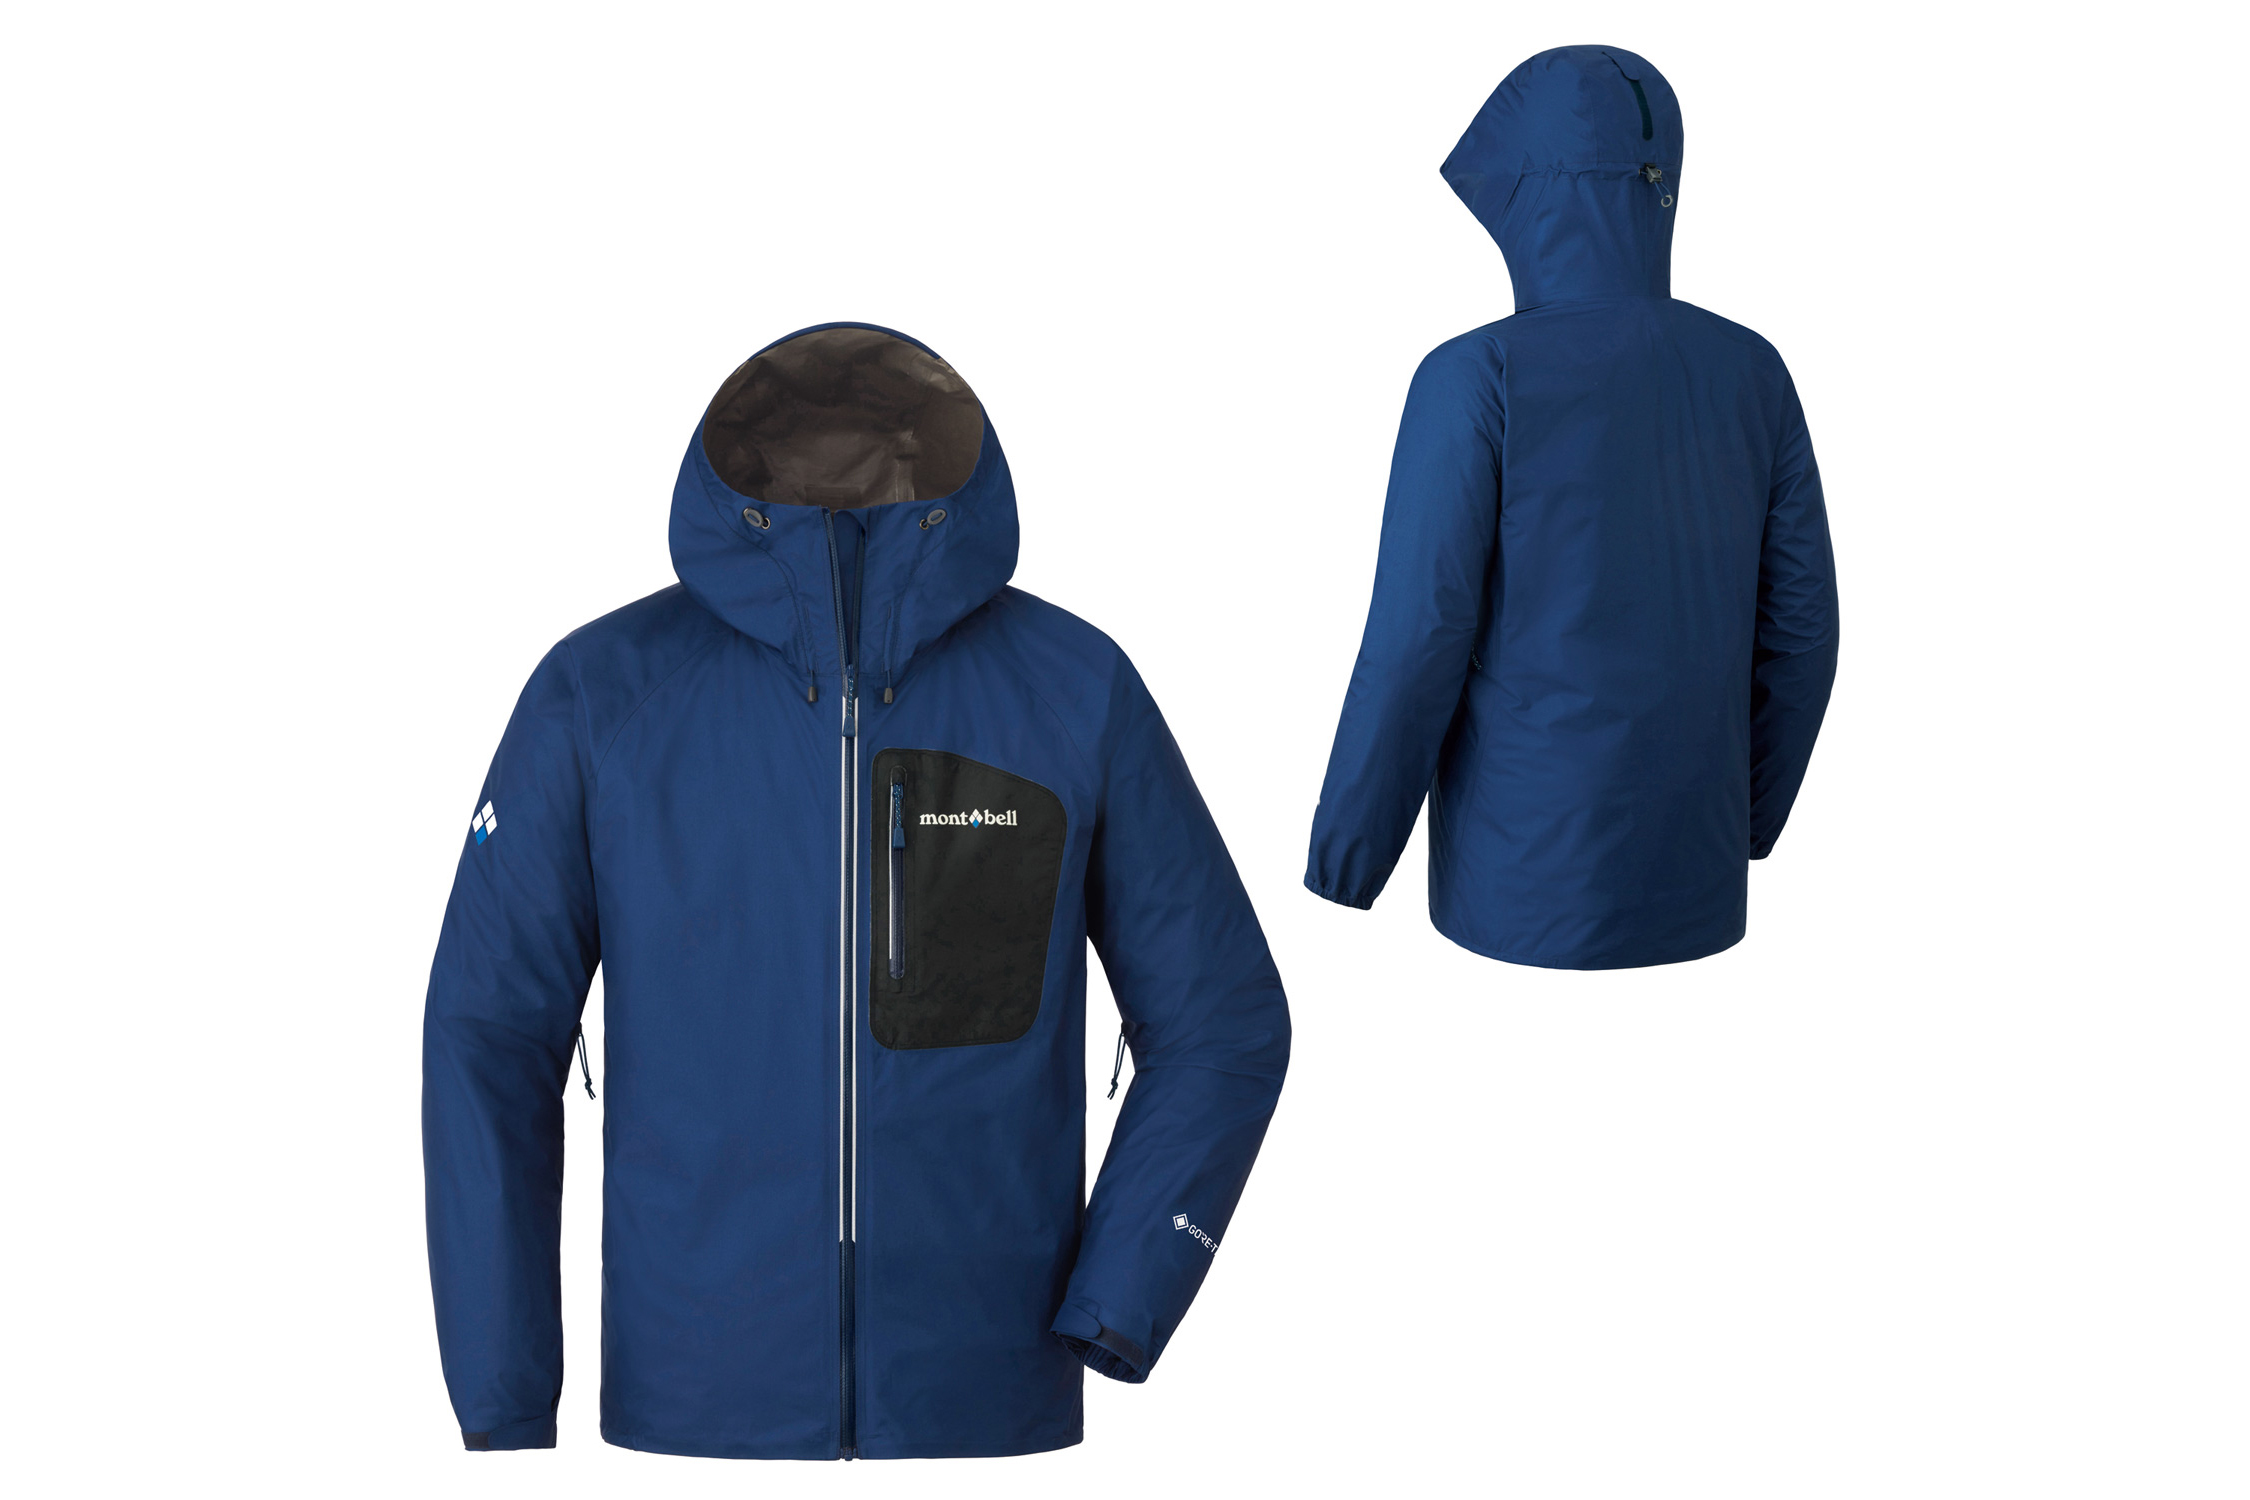 Montbell Torrent Flier rain jacket